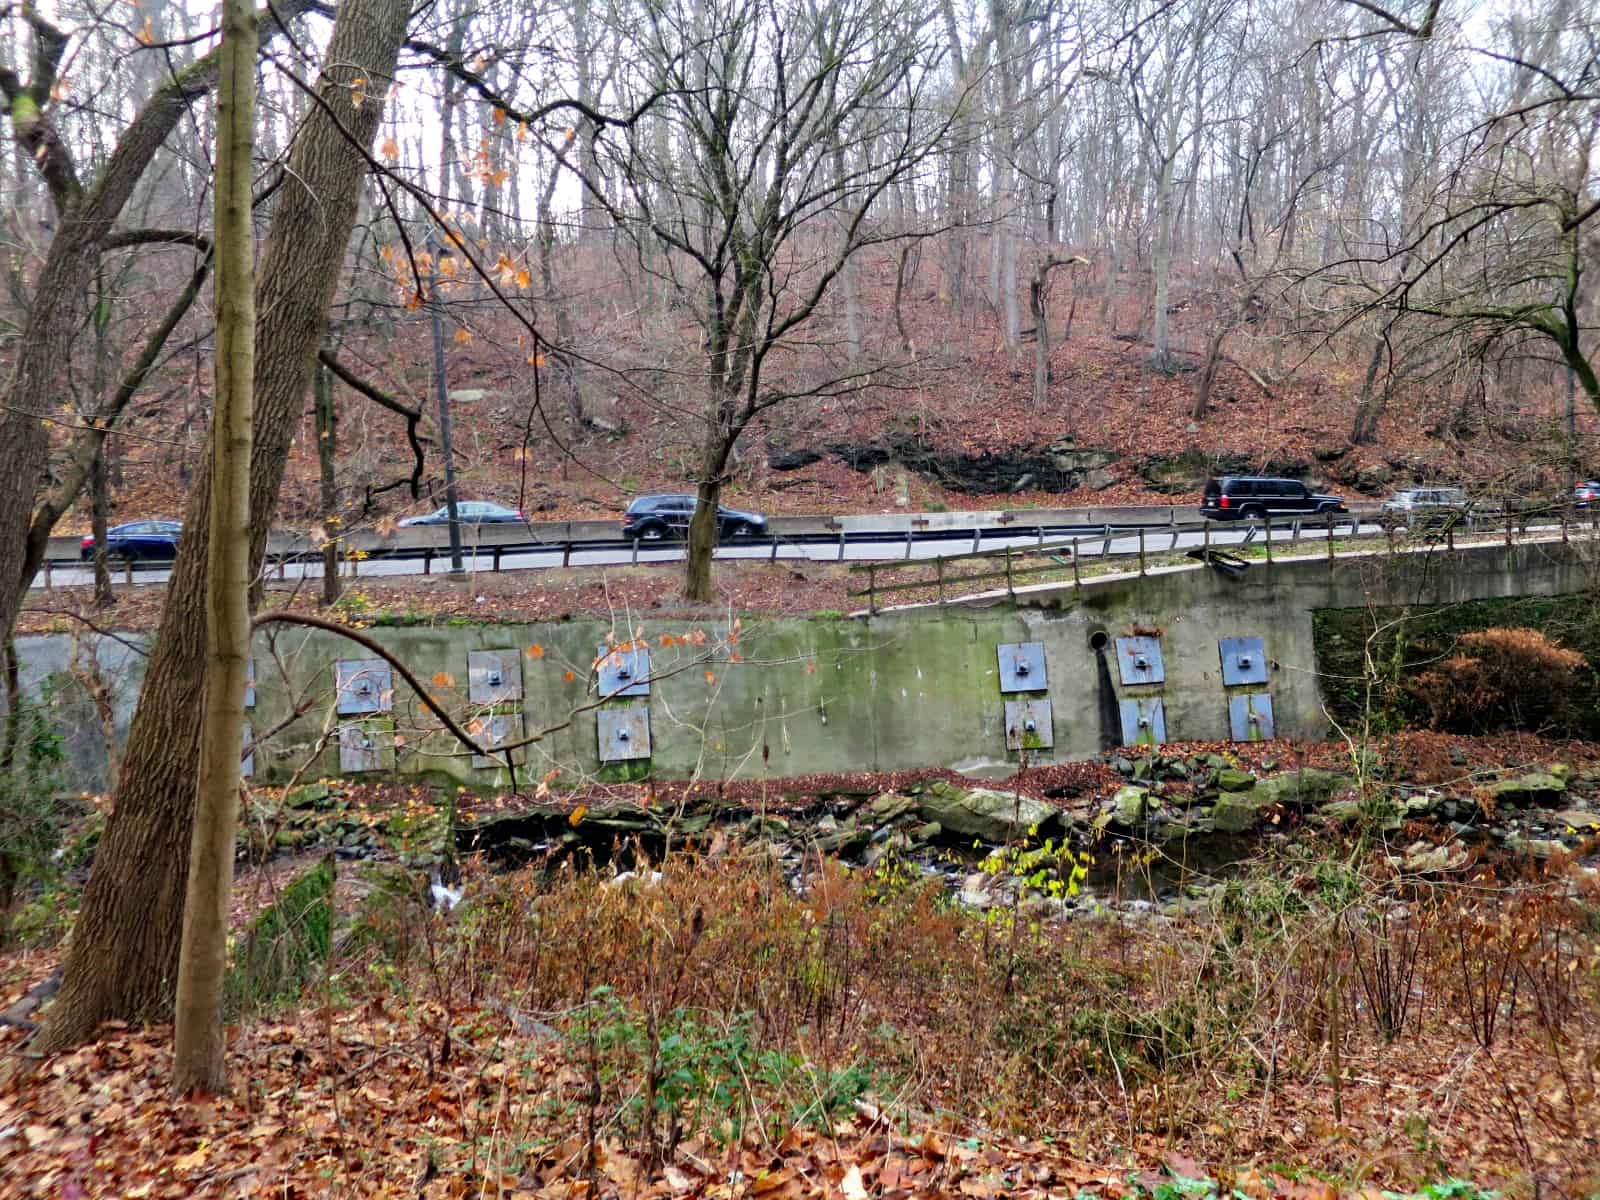 eastfallslocal-12-11-wissahickon-creek-lincoln-drive-kinda-scary-rivets-3-pm